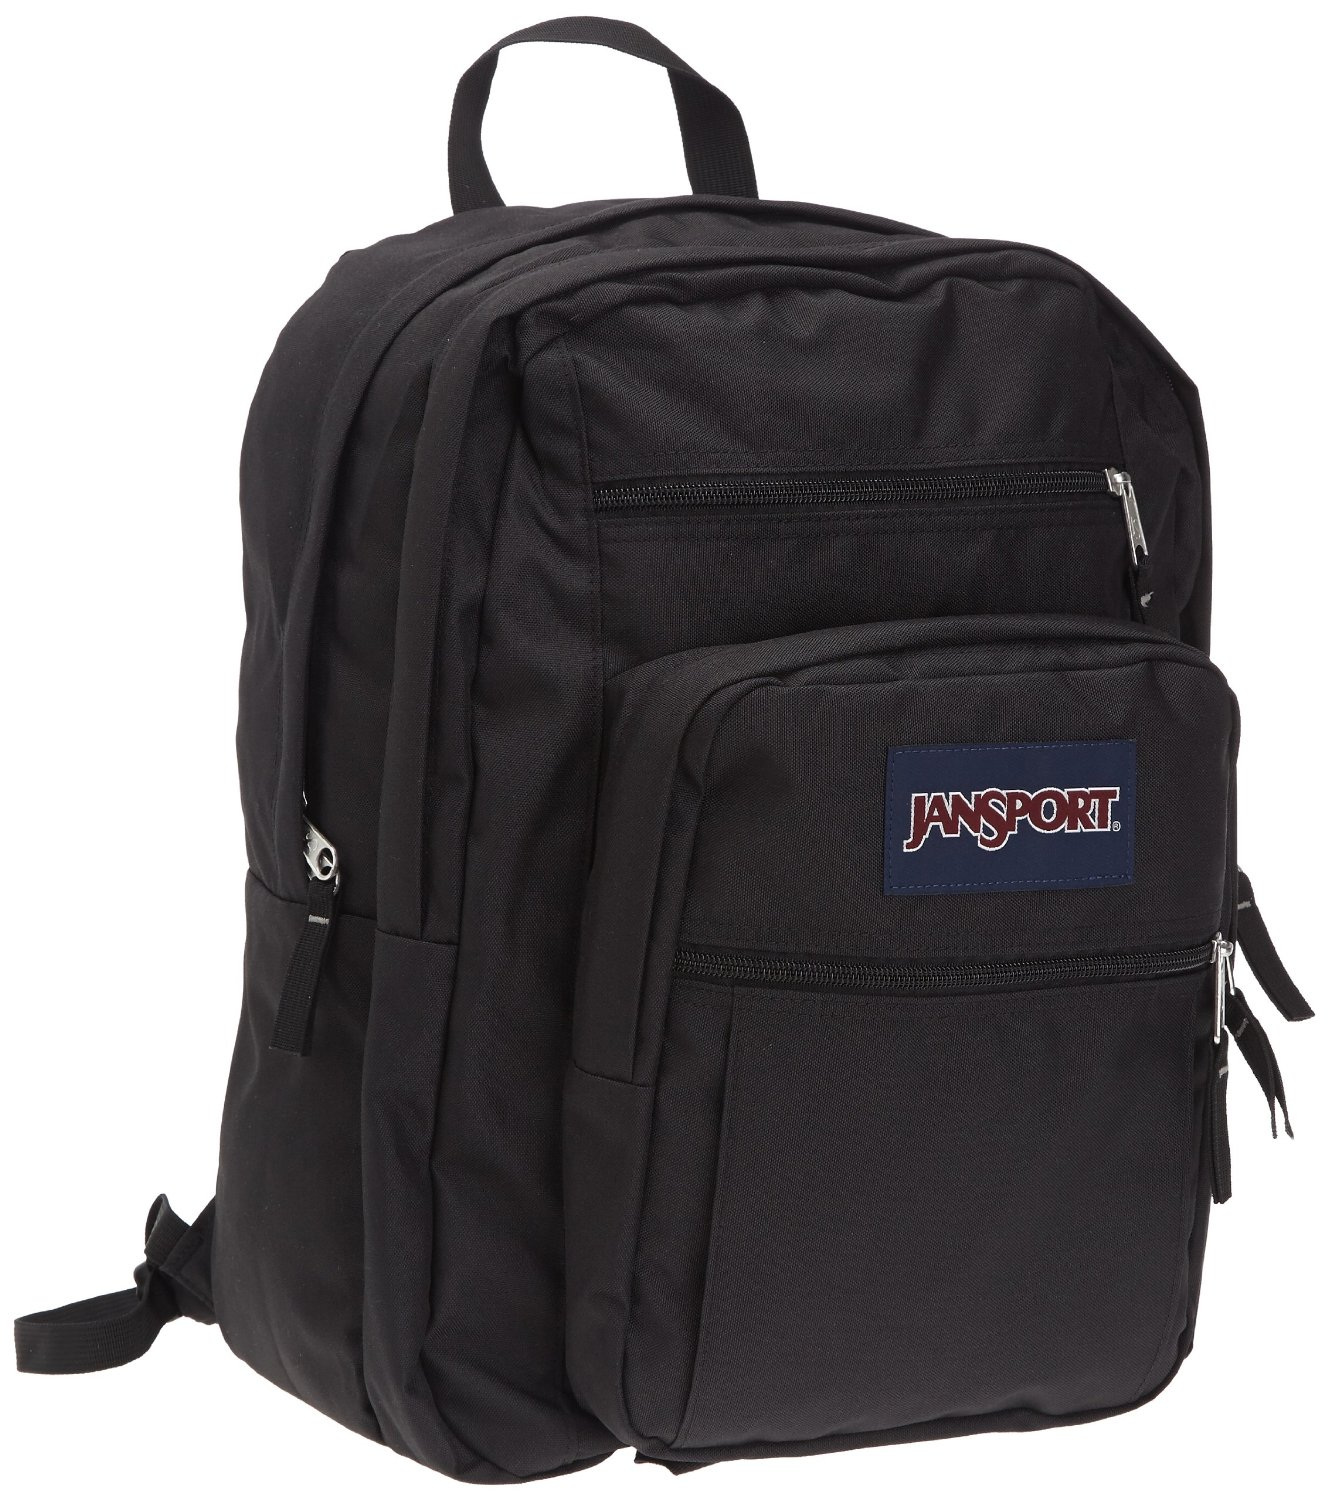 Large Jansport Backpacks UlSIMatc